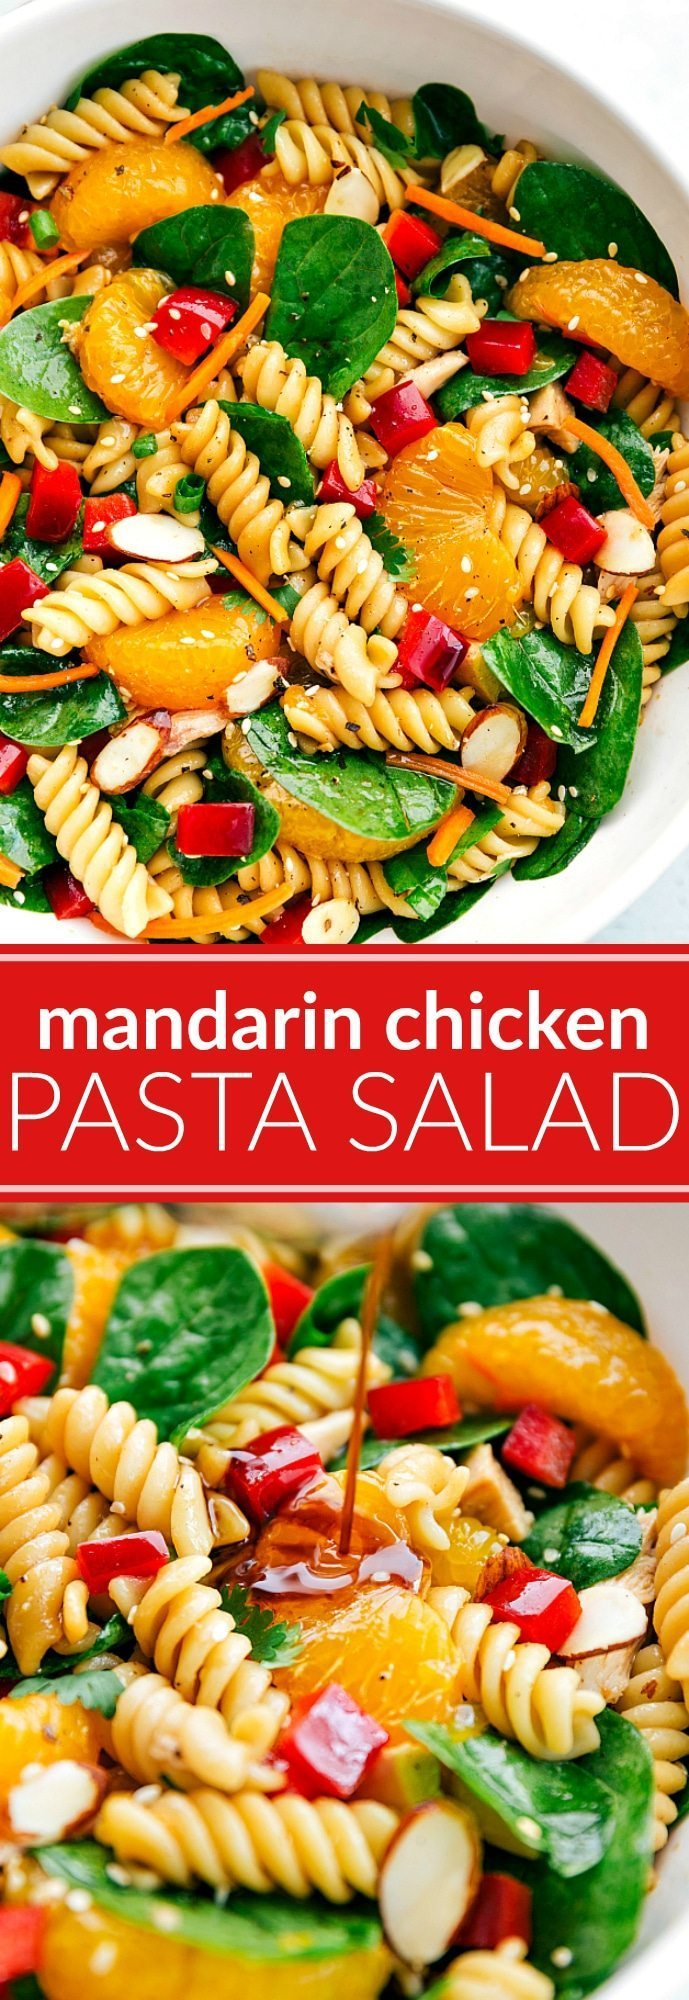 The ultimate BEST EVER Asian Pasta Salad! Mandarin, chicken, almond pasta salad with the BEST sesame dressing! via chelseasmessyapron.com